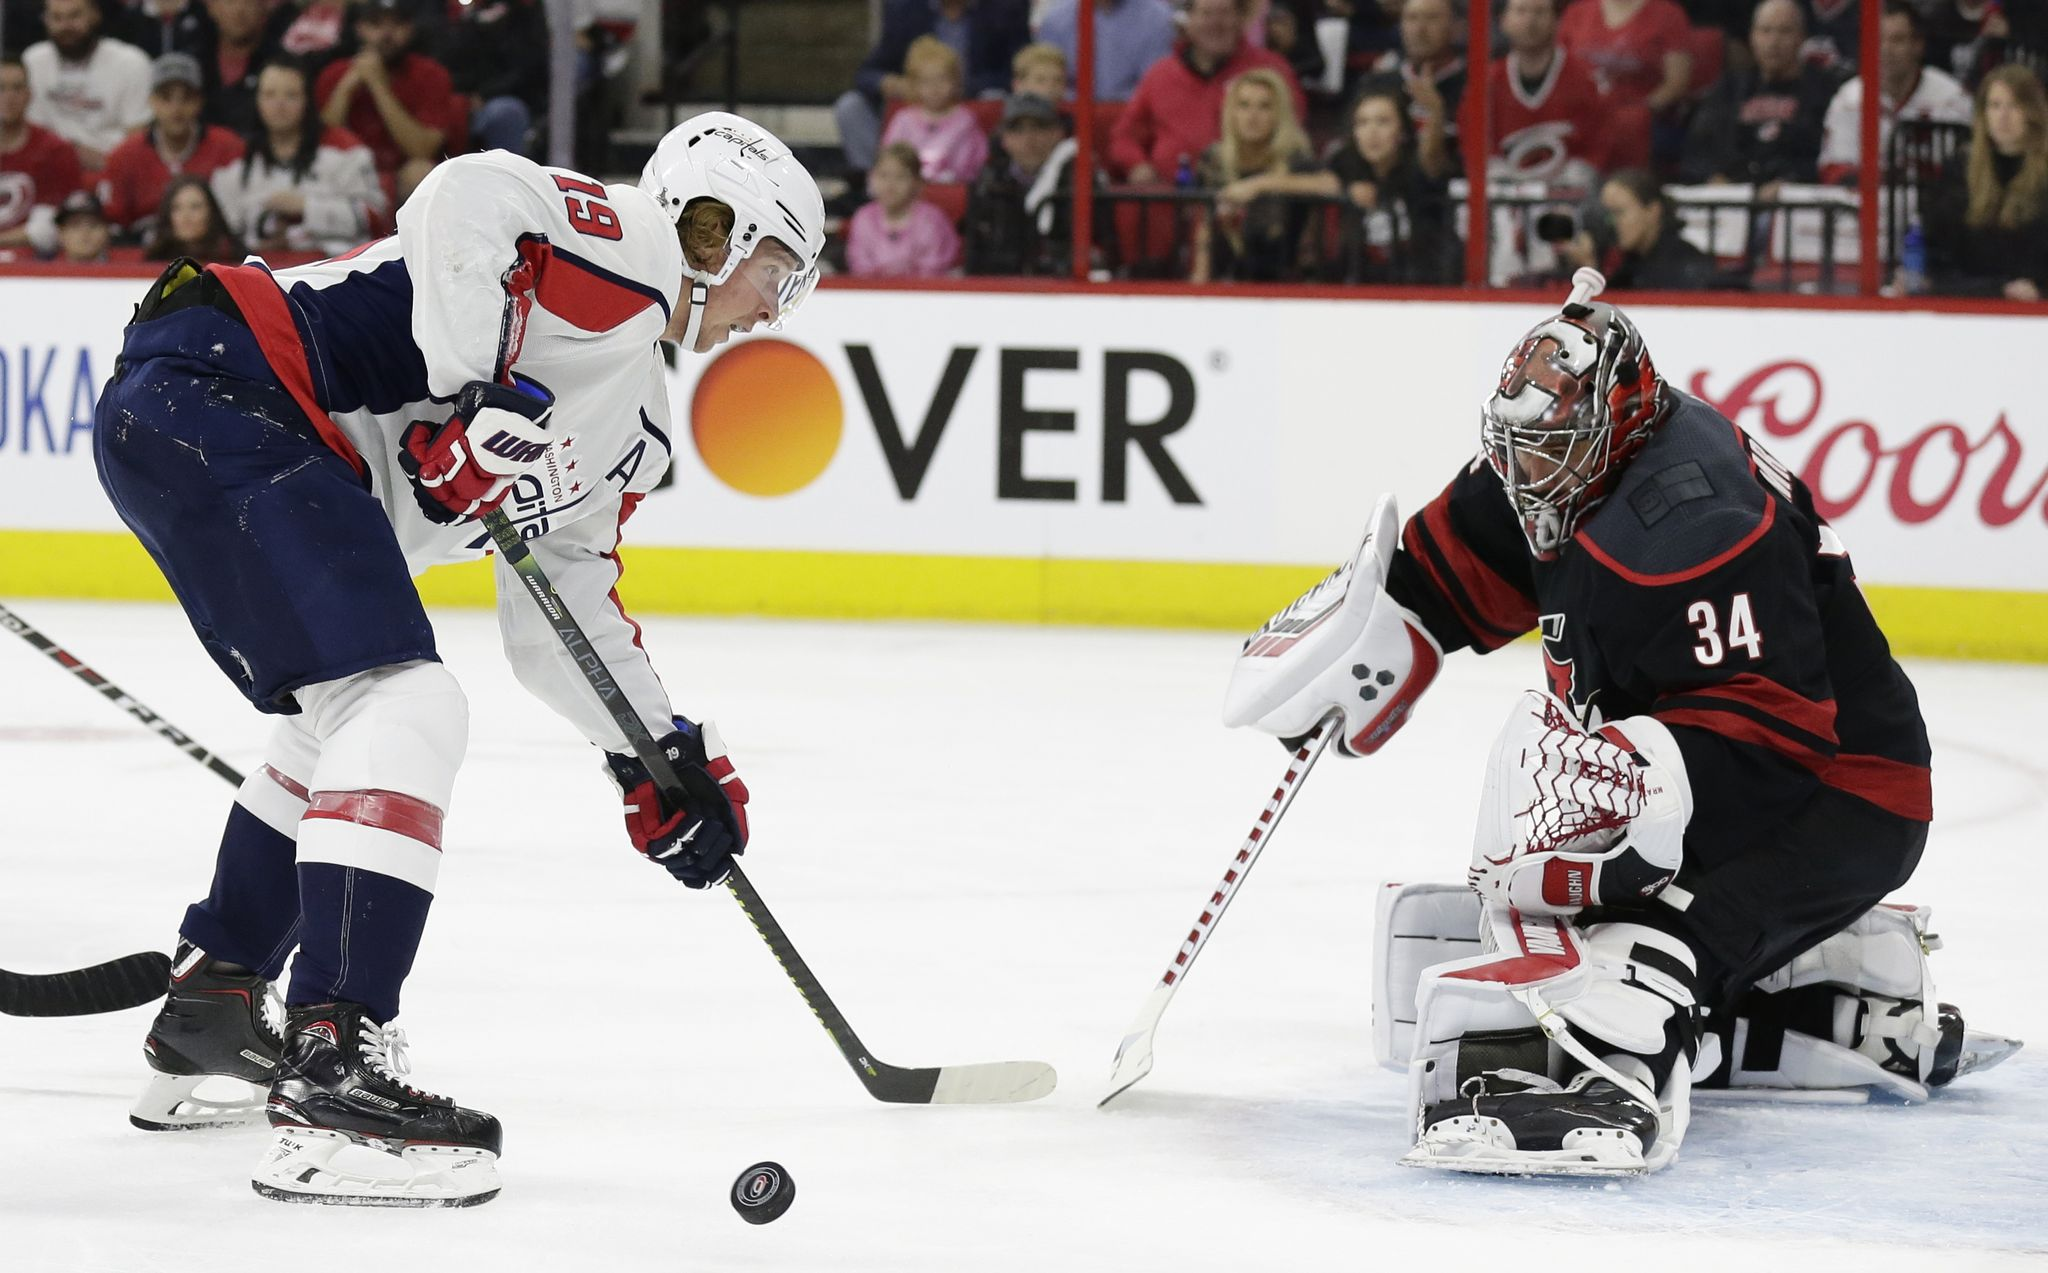 Capitals vs. Hurricanes Game 4: How to watch and what to watch for